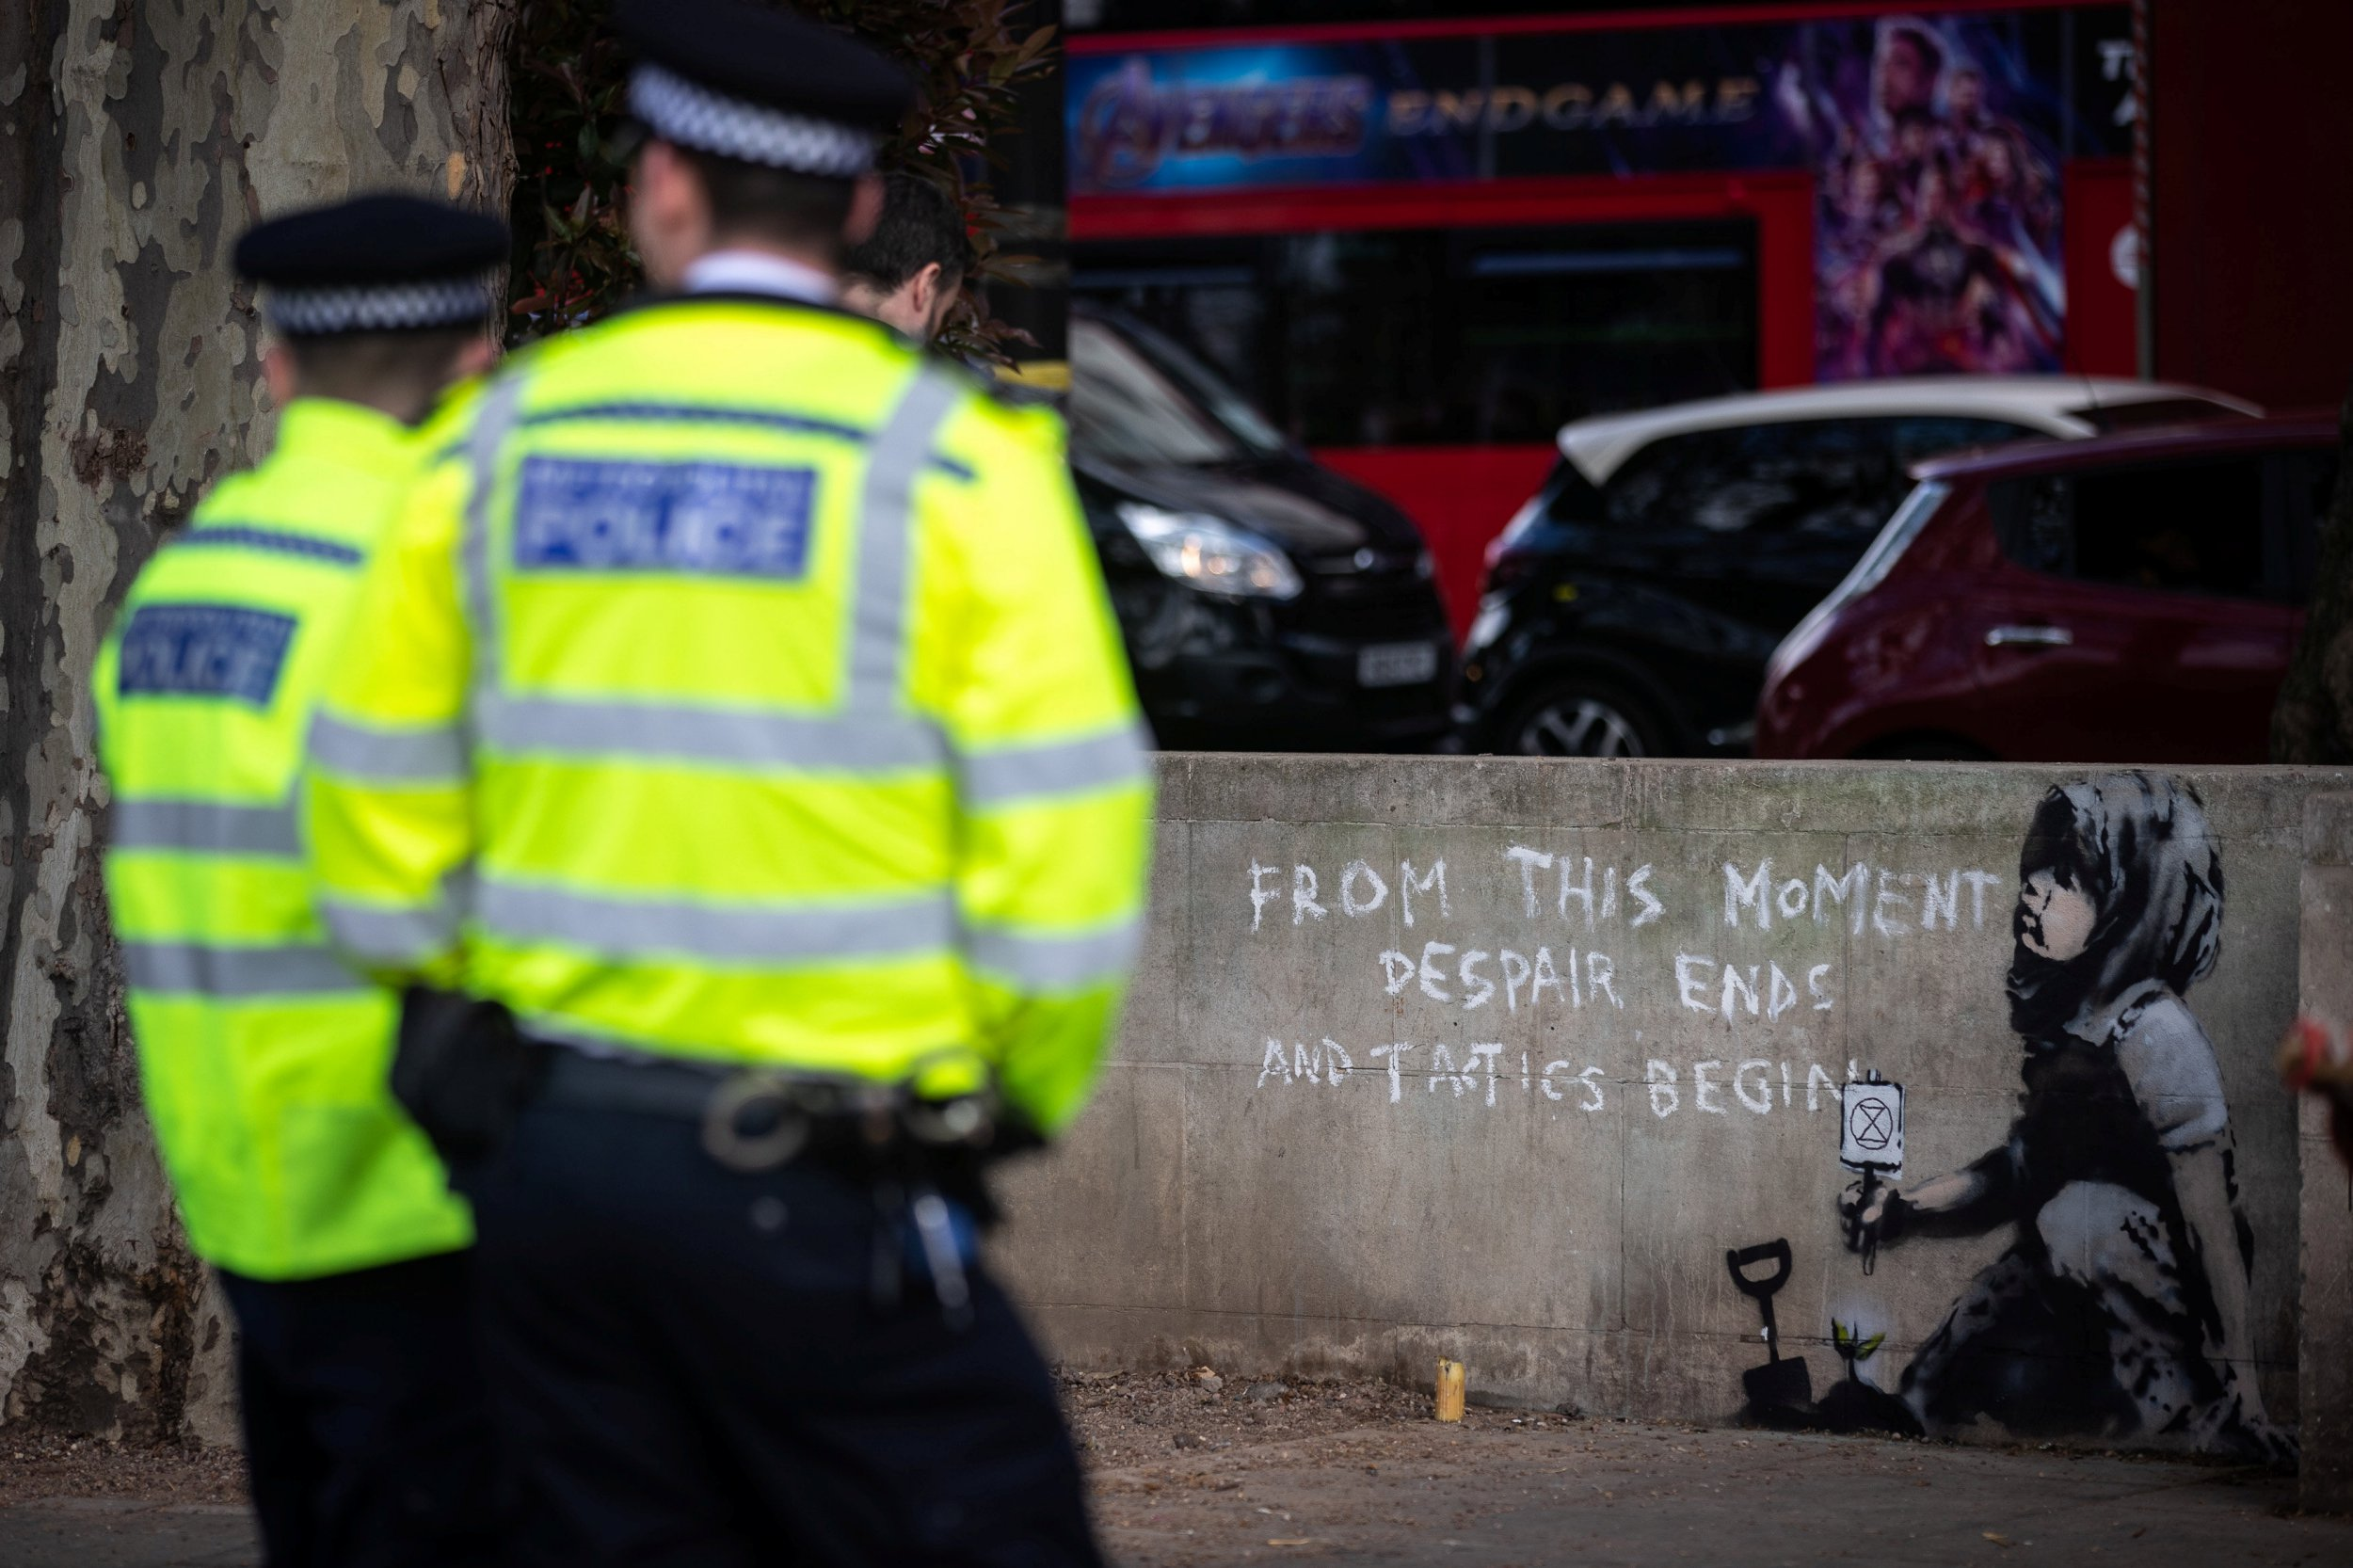 A new piece of street art believed to be by the artist known as Banksy is seen at Marble Arch, next to the site of the Extinction Rebellion protest, London, April 26 2019.